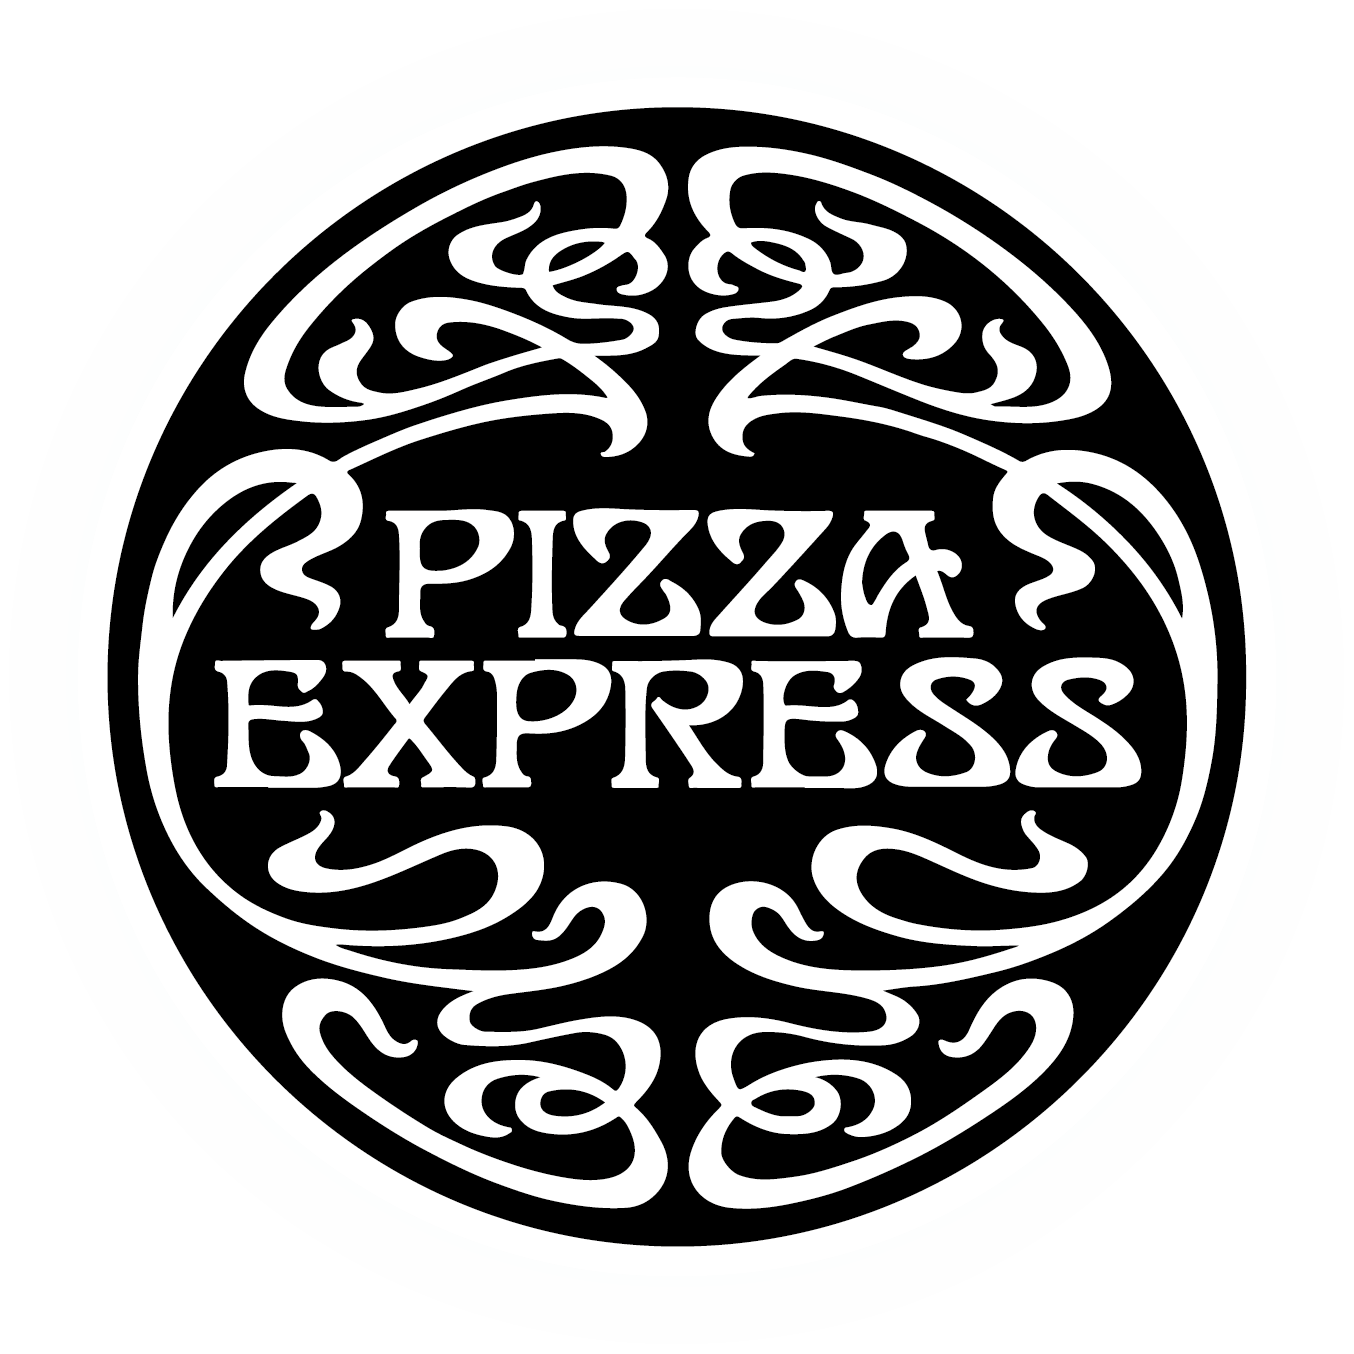 Enigma live escape rooms pizza express offer